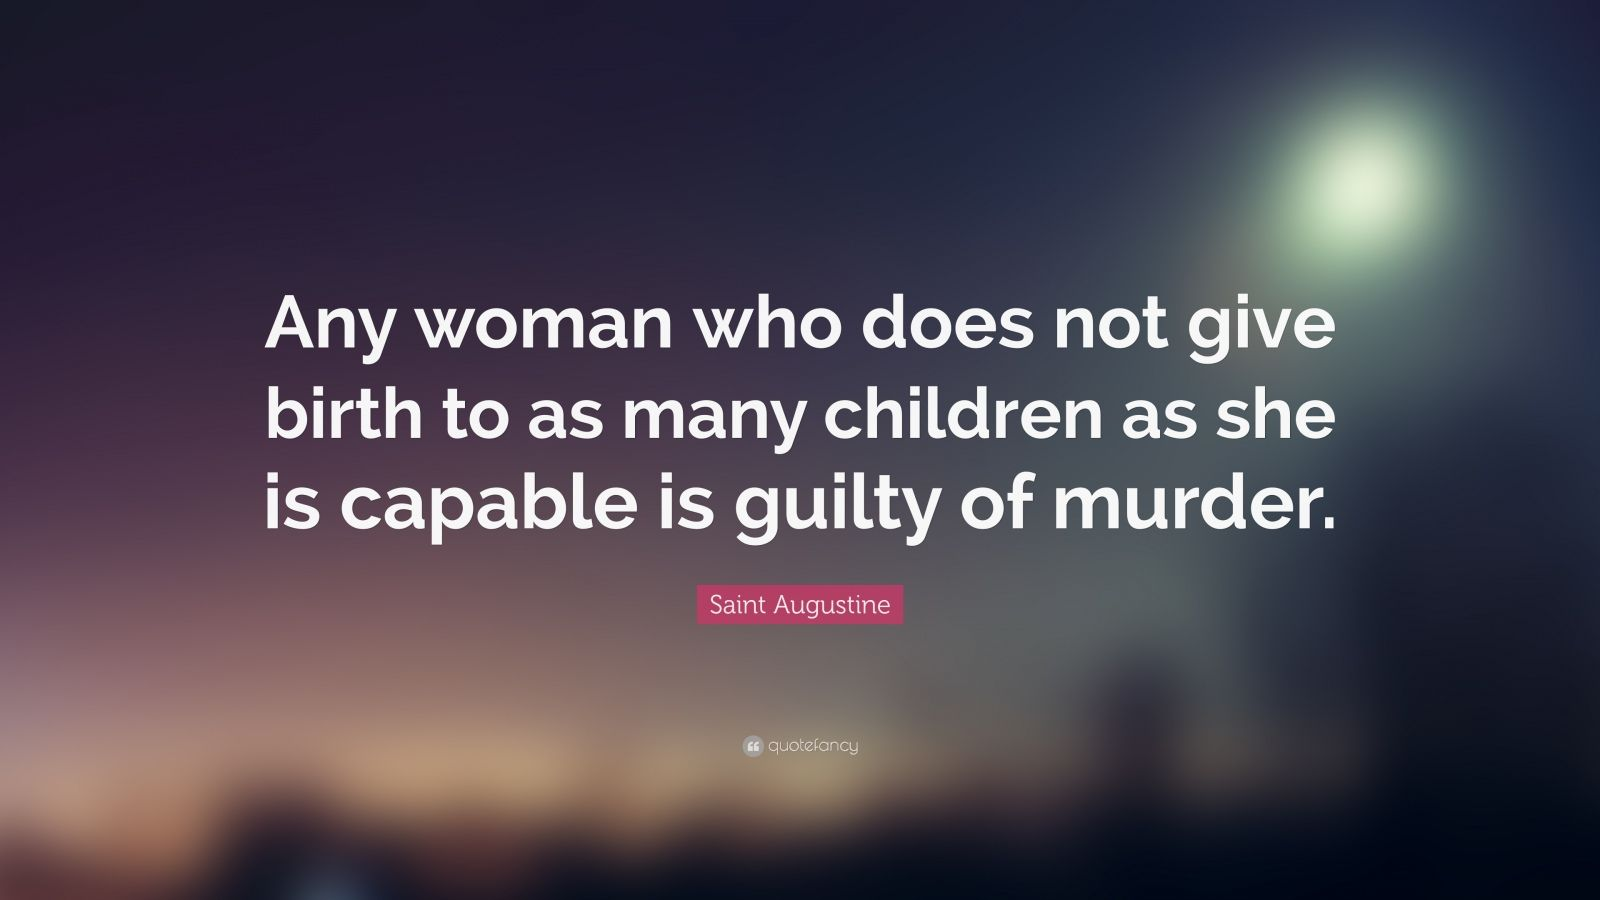 """Saint Augustine Quote: """"Any woman who does not give birth to as many children as she is capable is guilty of murder."""""""